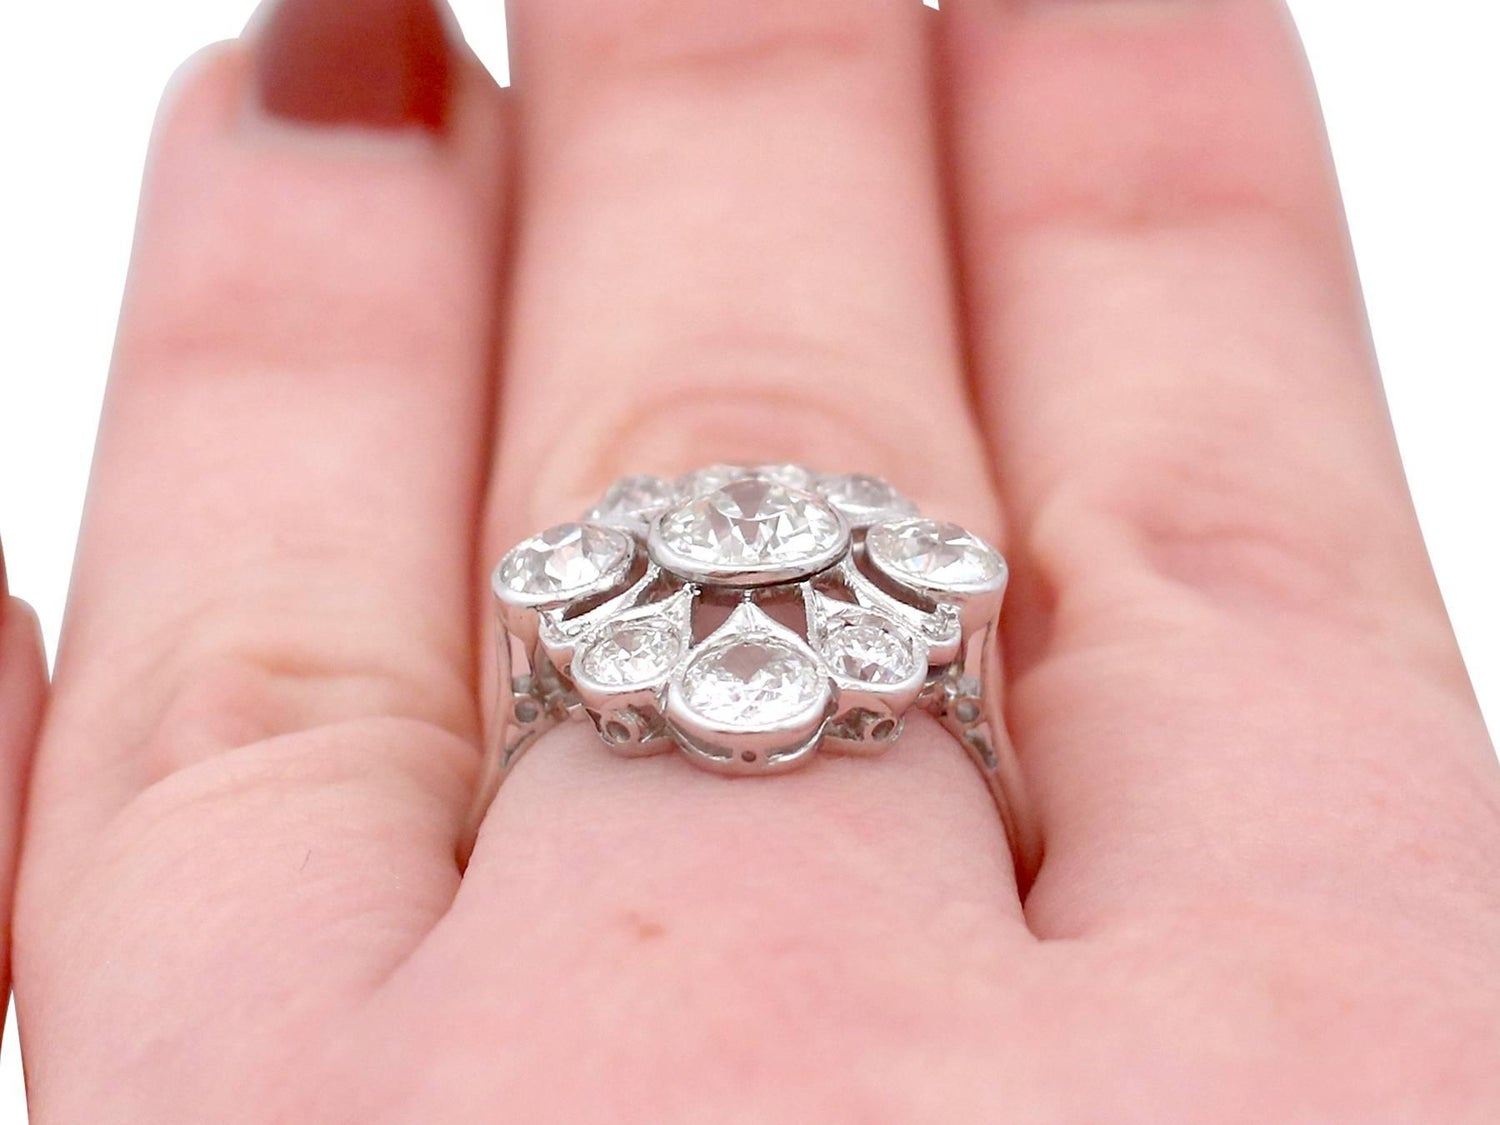 1920s 2.61 Carat Diamond and Platinum Dress Ring For Sale at 1stdibs